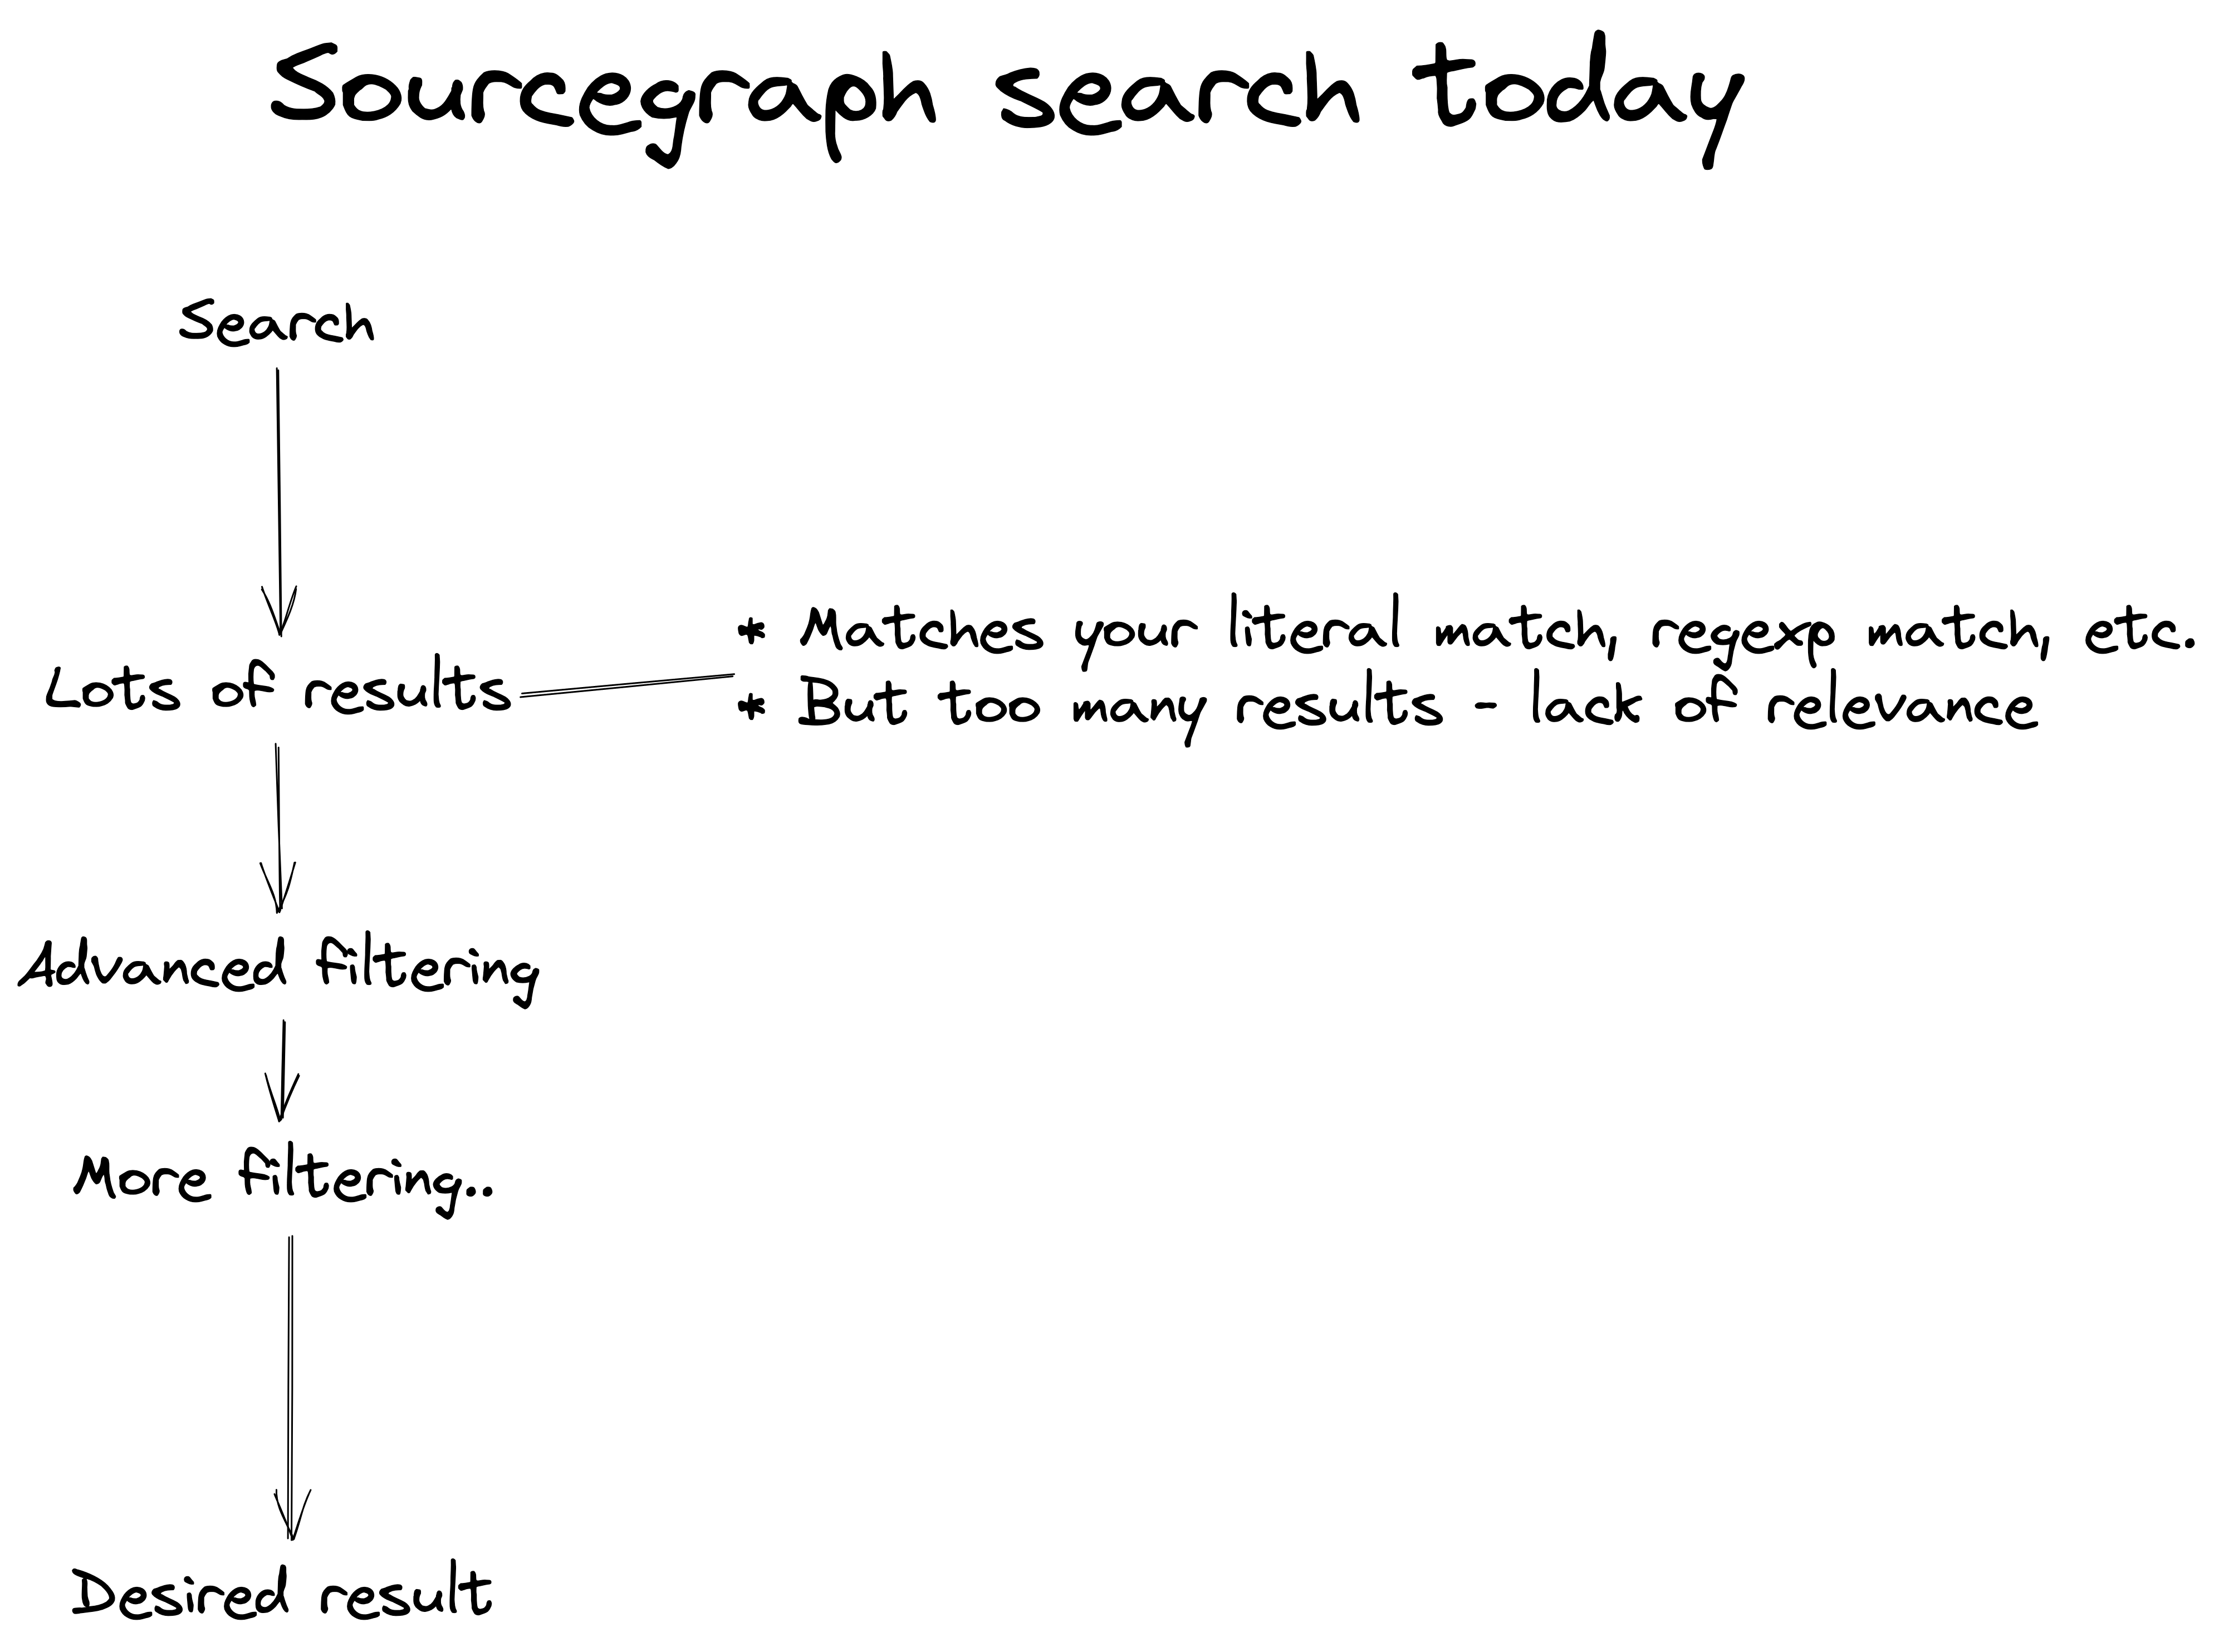 Graphic: Sourcegraph search today, a search begins by getting lots of results. These results match your literal query, or regexp query, etc. but you get too many results. There is a lack of relevance. Then you apply advanced filtering, more filtering, etc. to get to a desired result.